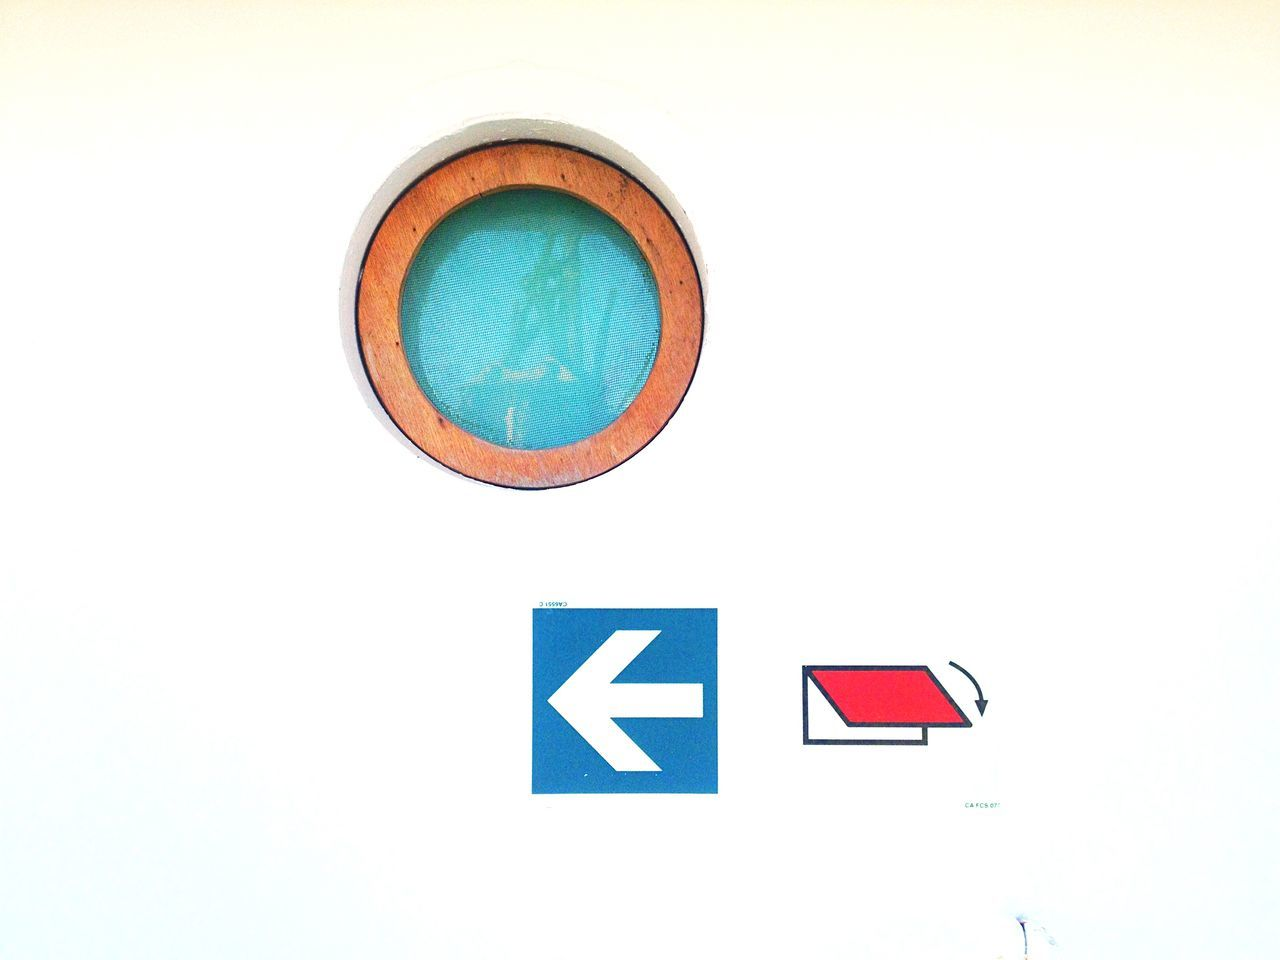 Go left Minimalism Working Life On A Ship Traveling NEM Submissions In A Sea Town The Places I've Been Today IPhoneography